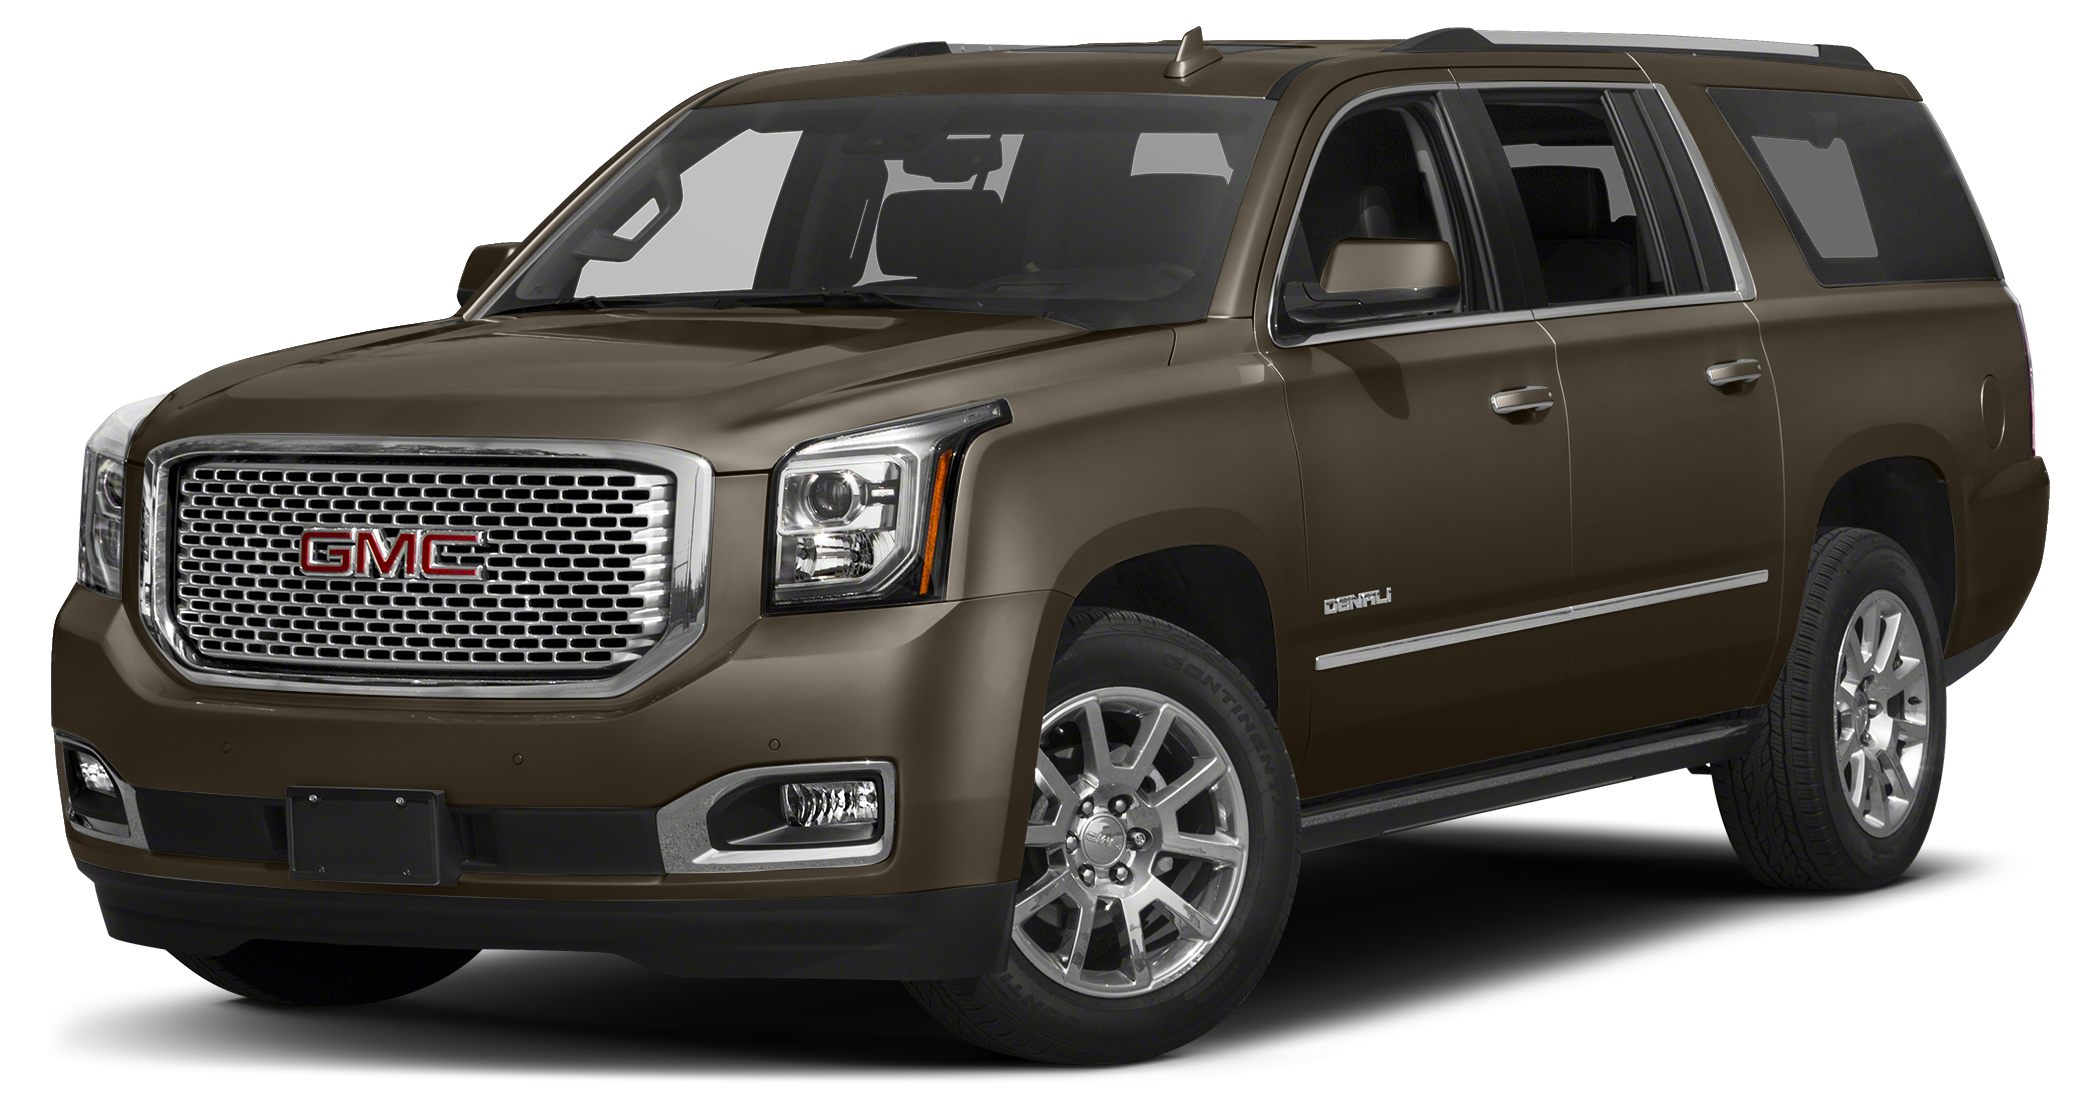 2016 GMC Yukon XL Denali This 2016 GMC Yukon XL Denali has all of the best features that you want